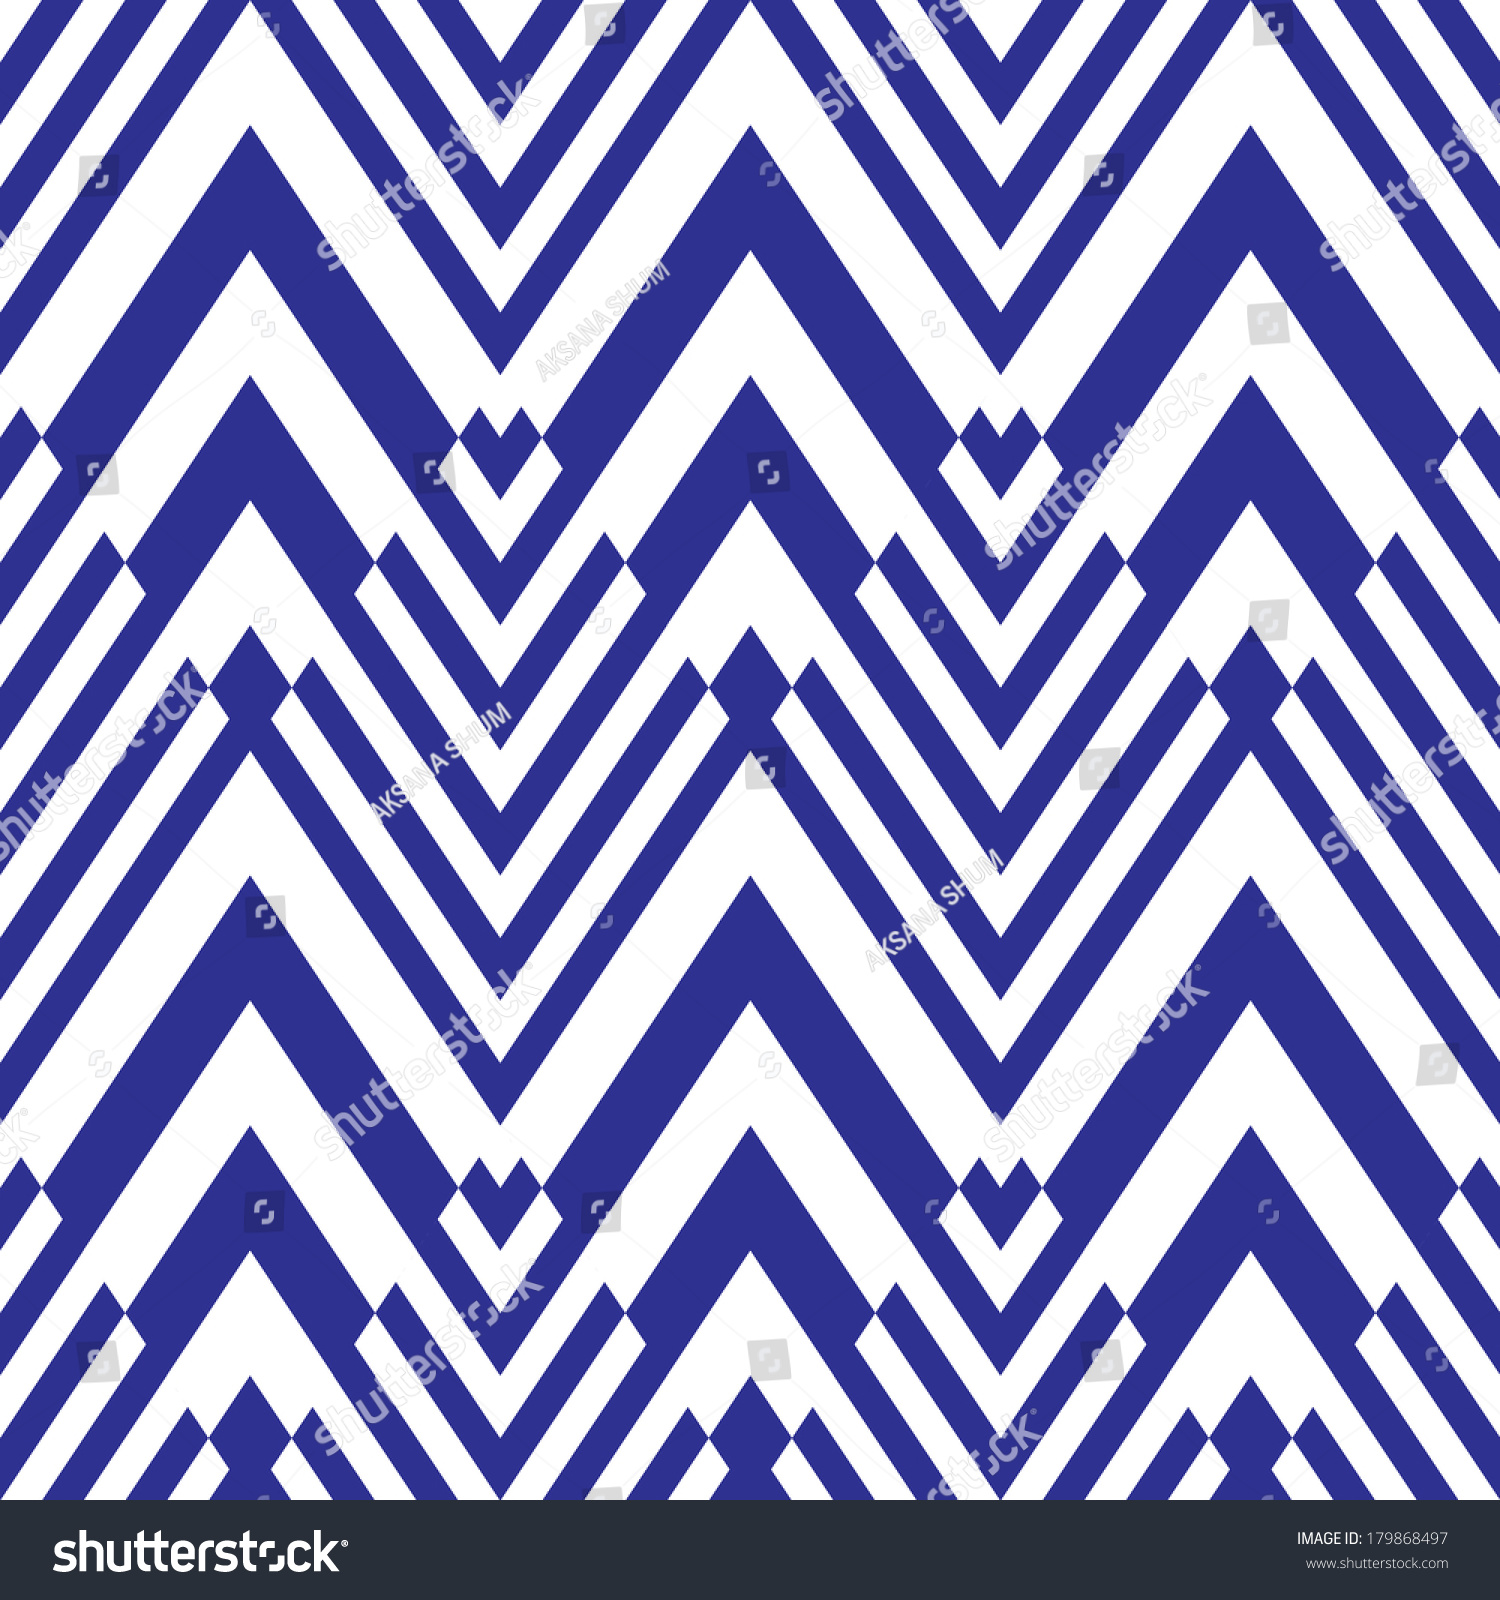 seamless geometric chevron pattern background stock vector illustration 179868497 shutterstock. Black Bedroom Furniture Sets. Home Design Ideas